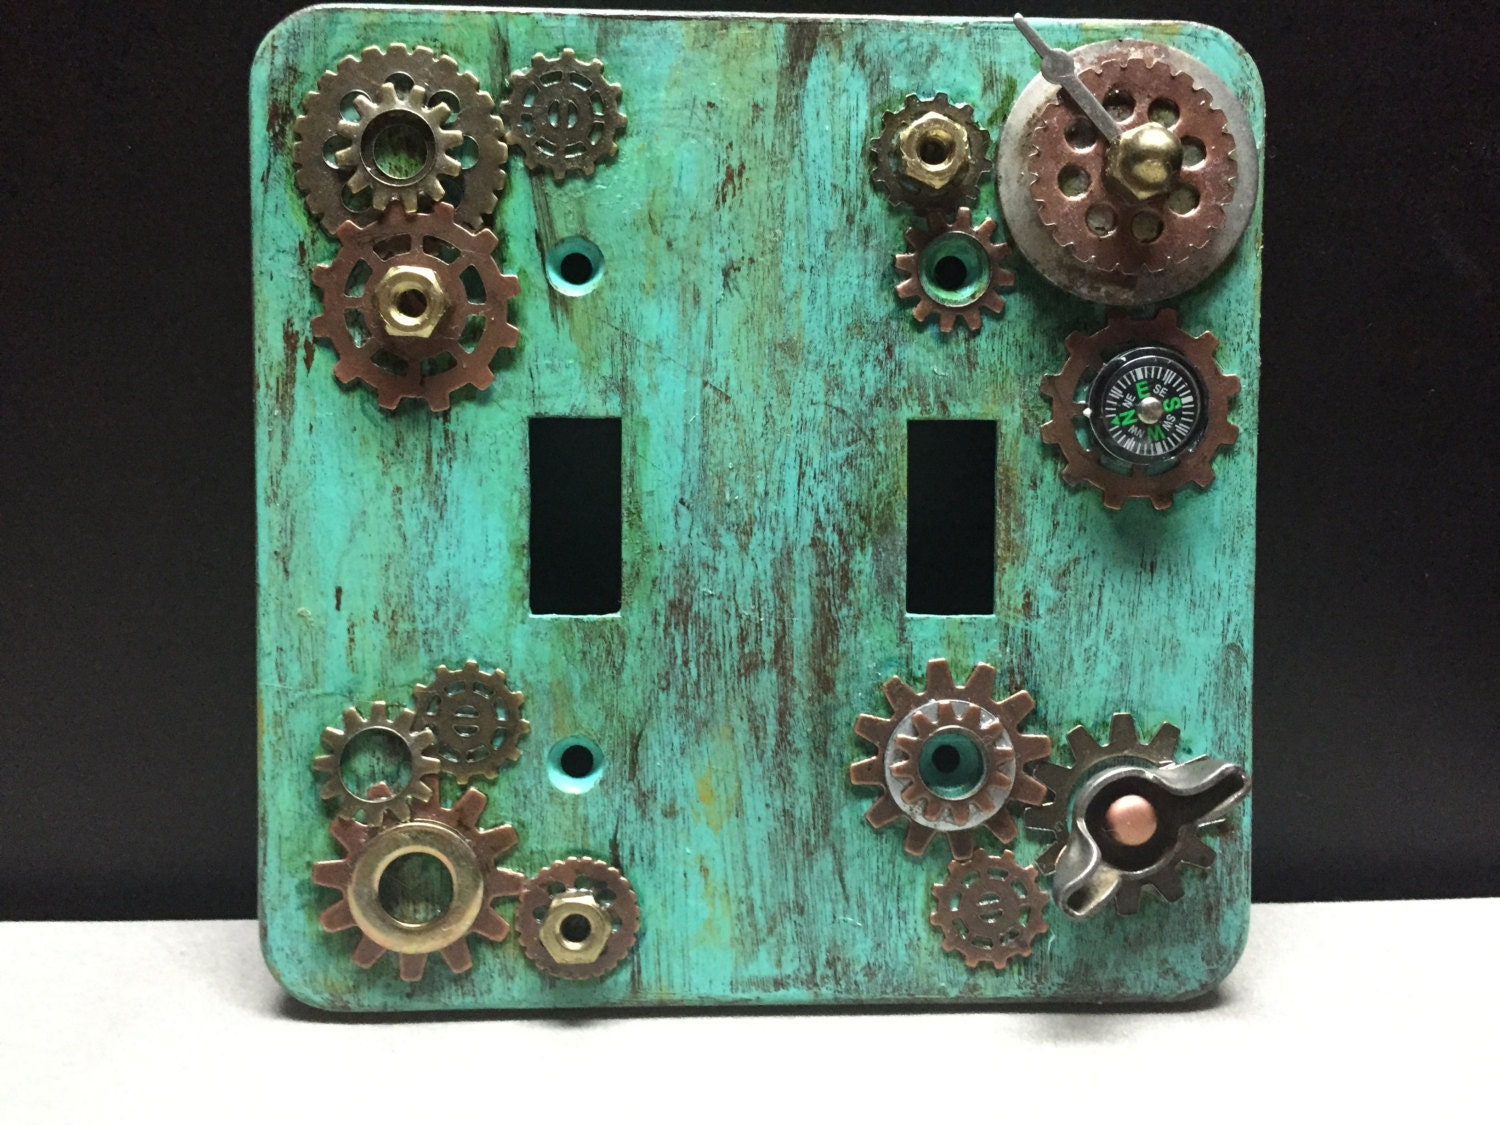 Steampunk Light Switch Plate Cover By Somewhattimeless On Etsy